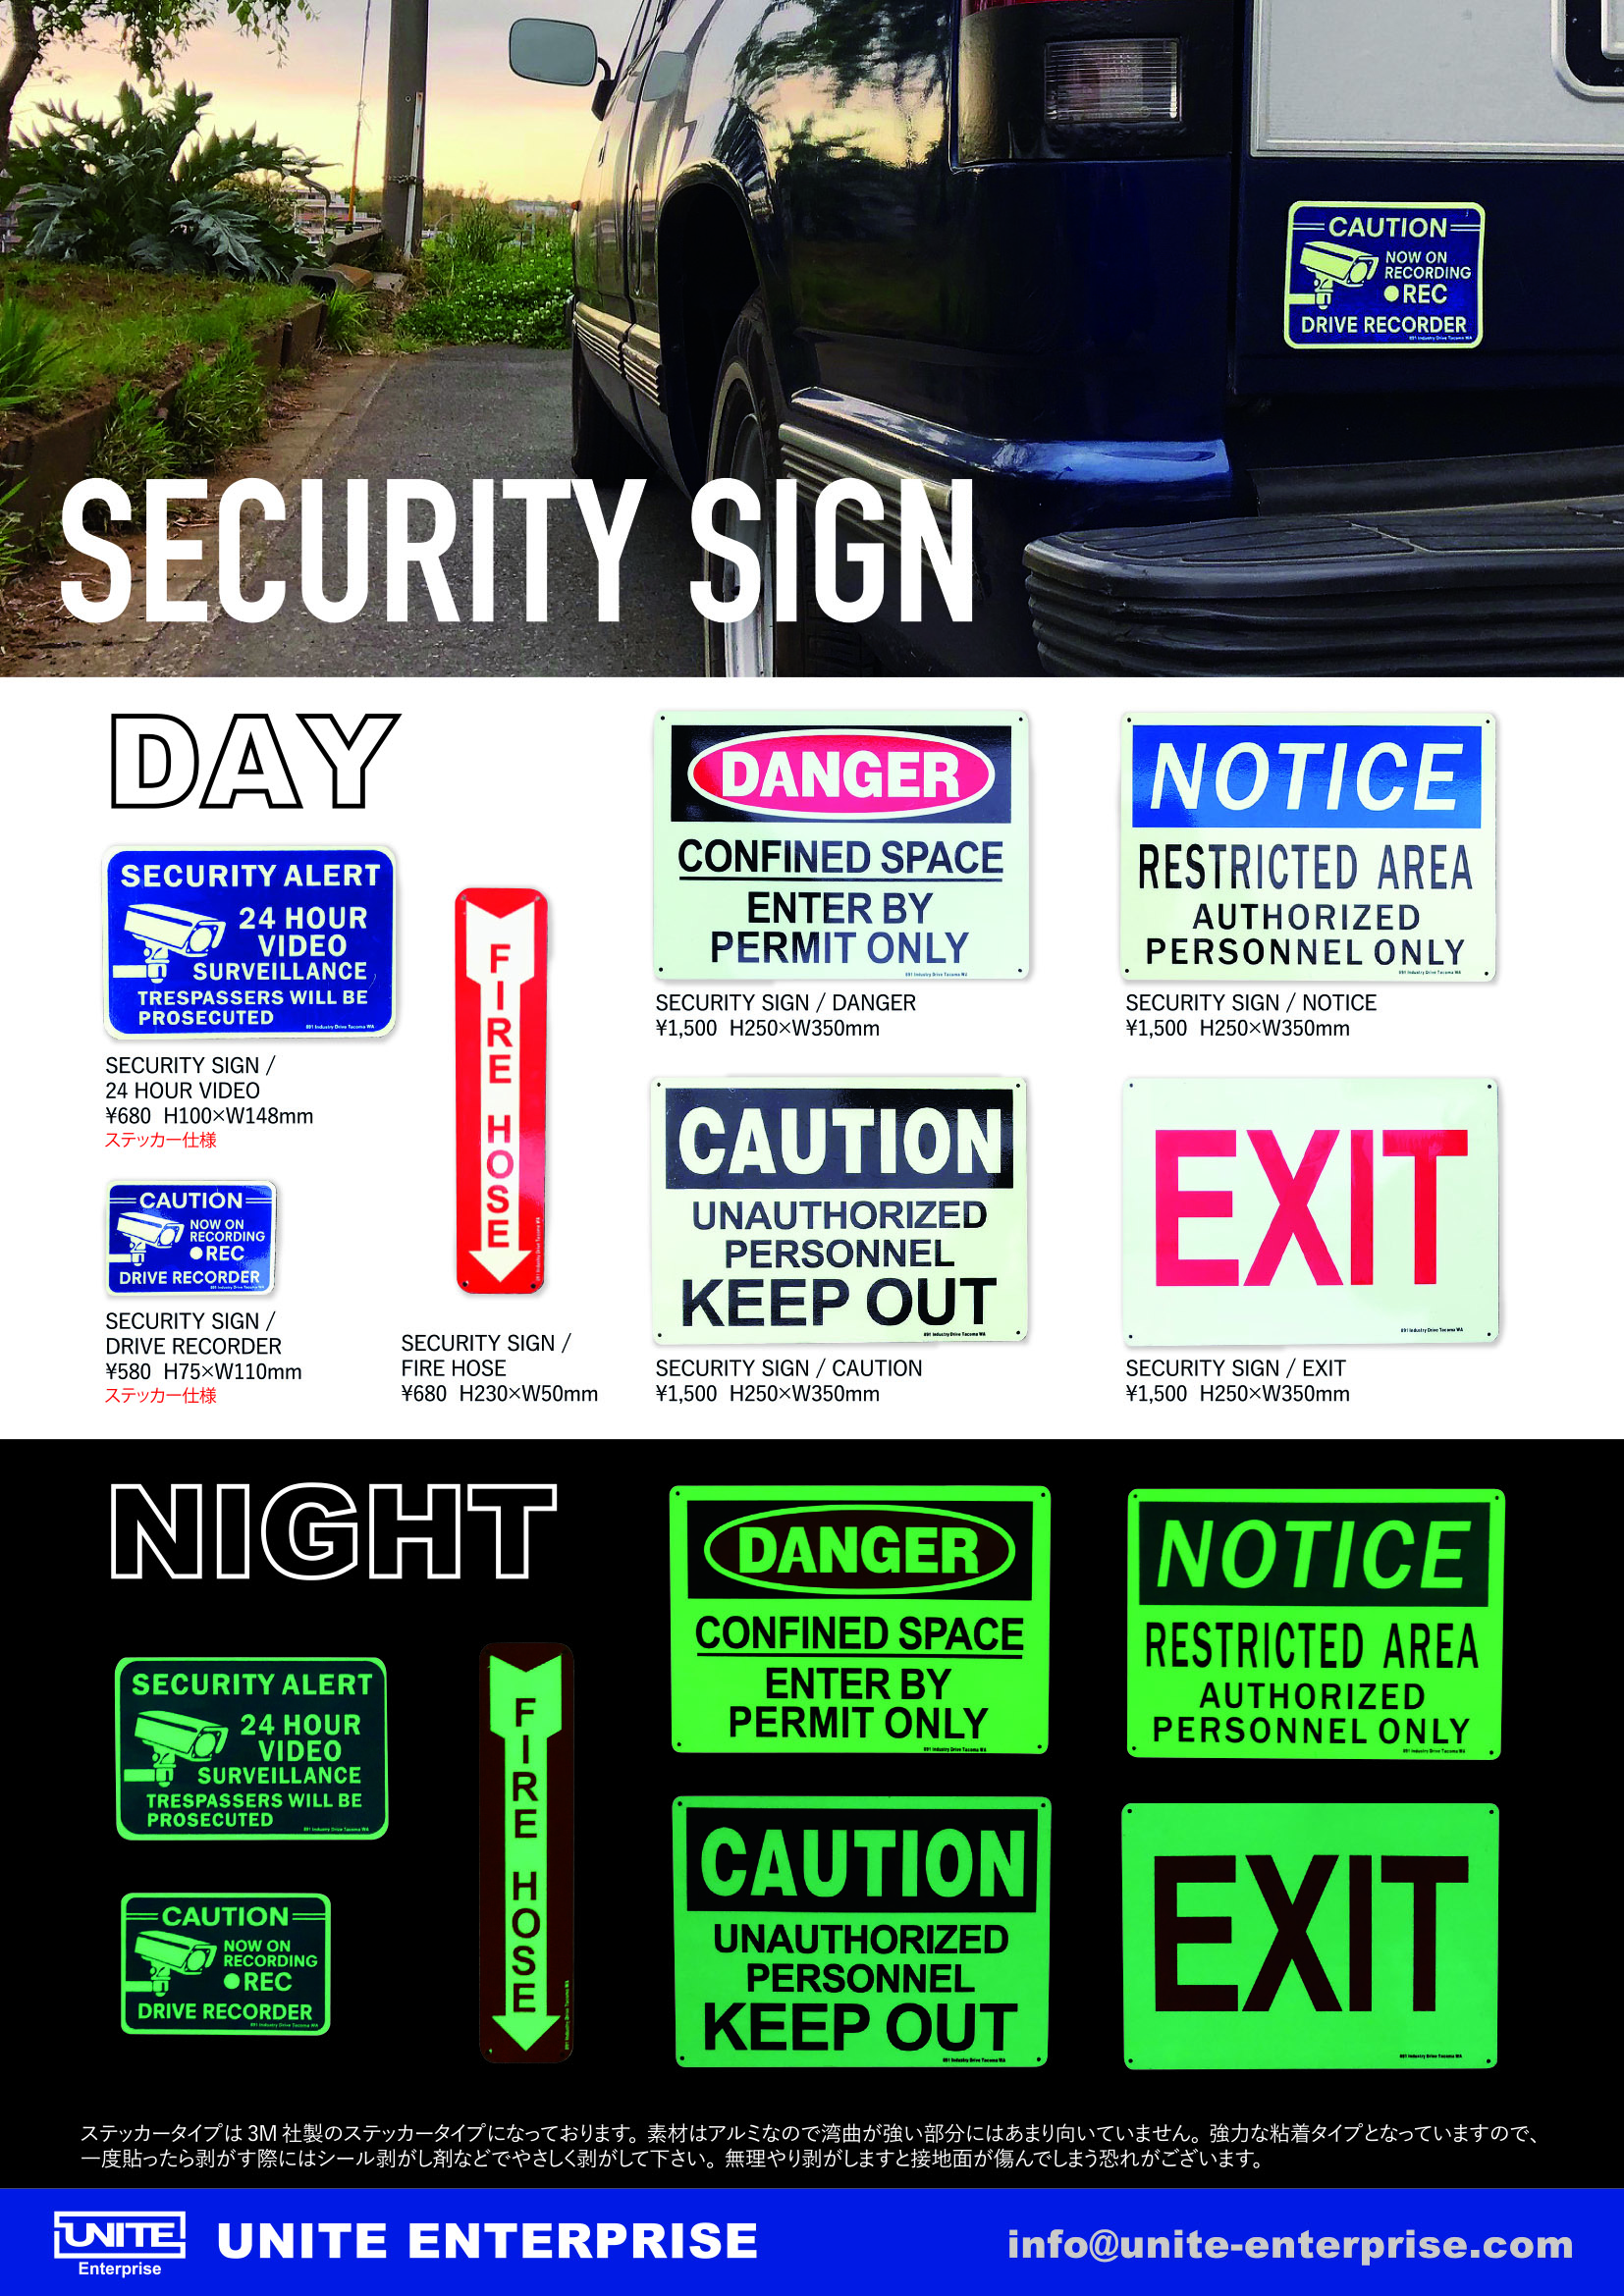 20190508_SECURITY SIGN